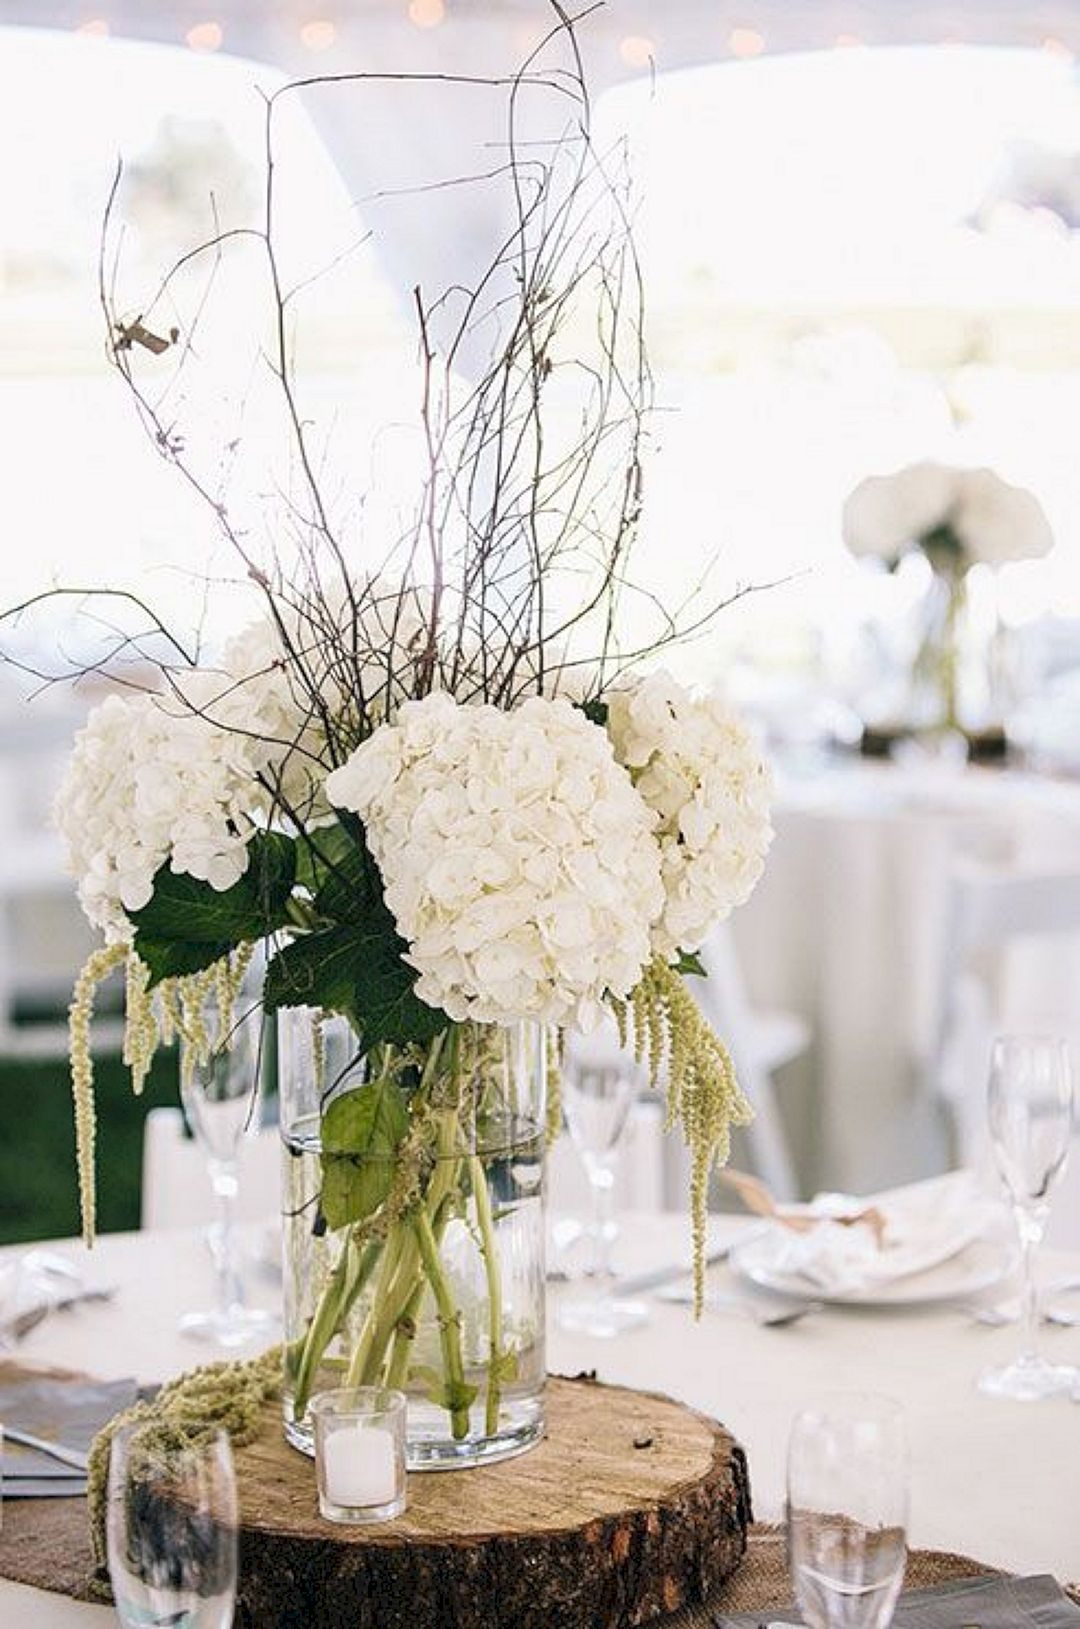 94 DIY Creative Rustic Chic Wedding Centerpieces Ideas | Pinterest ...